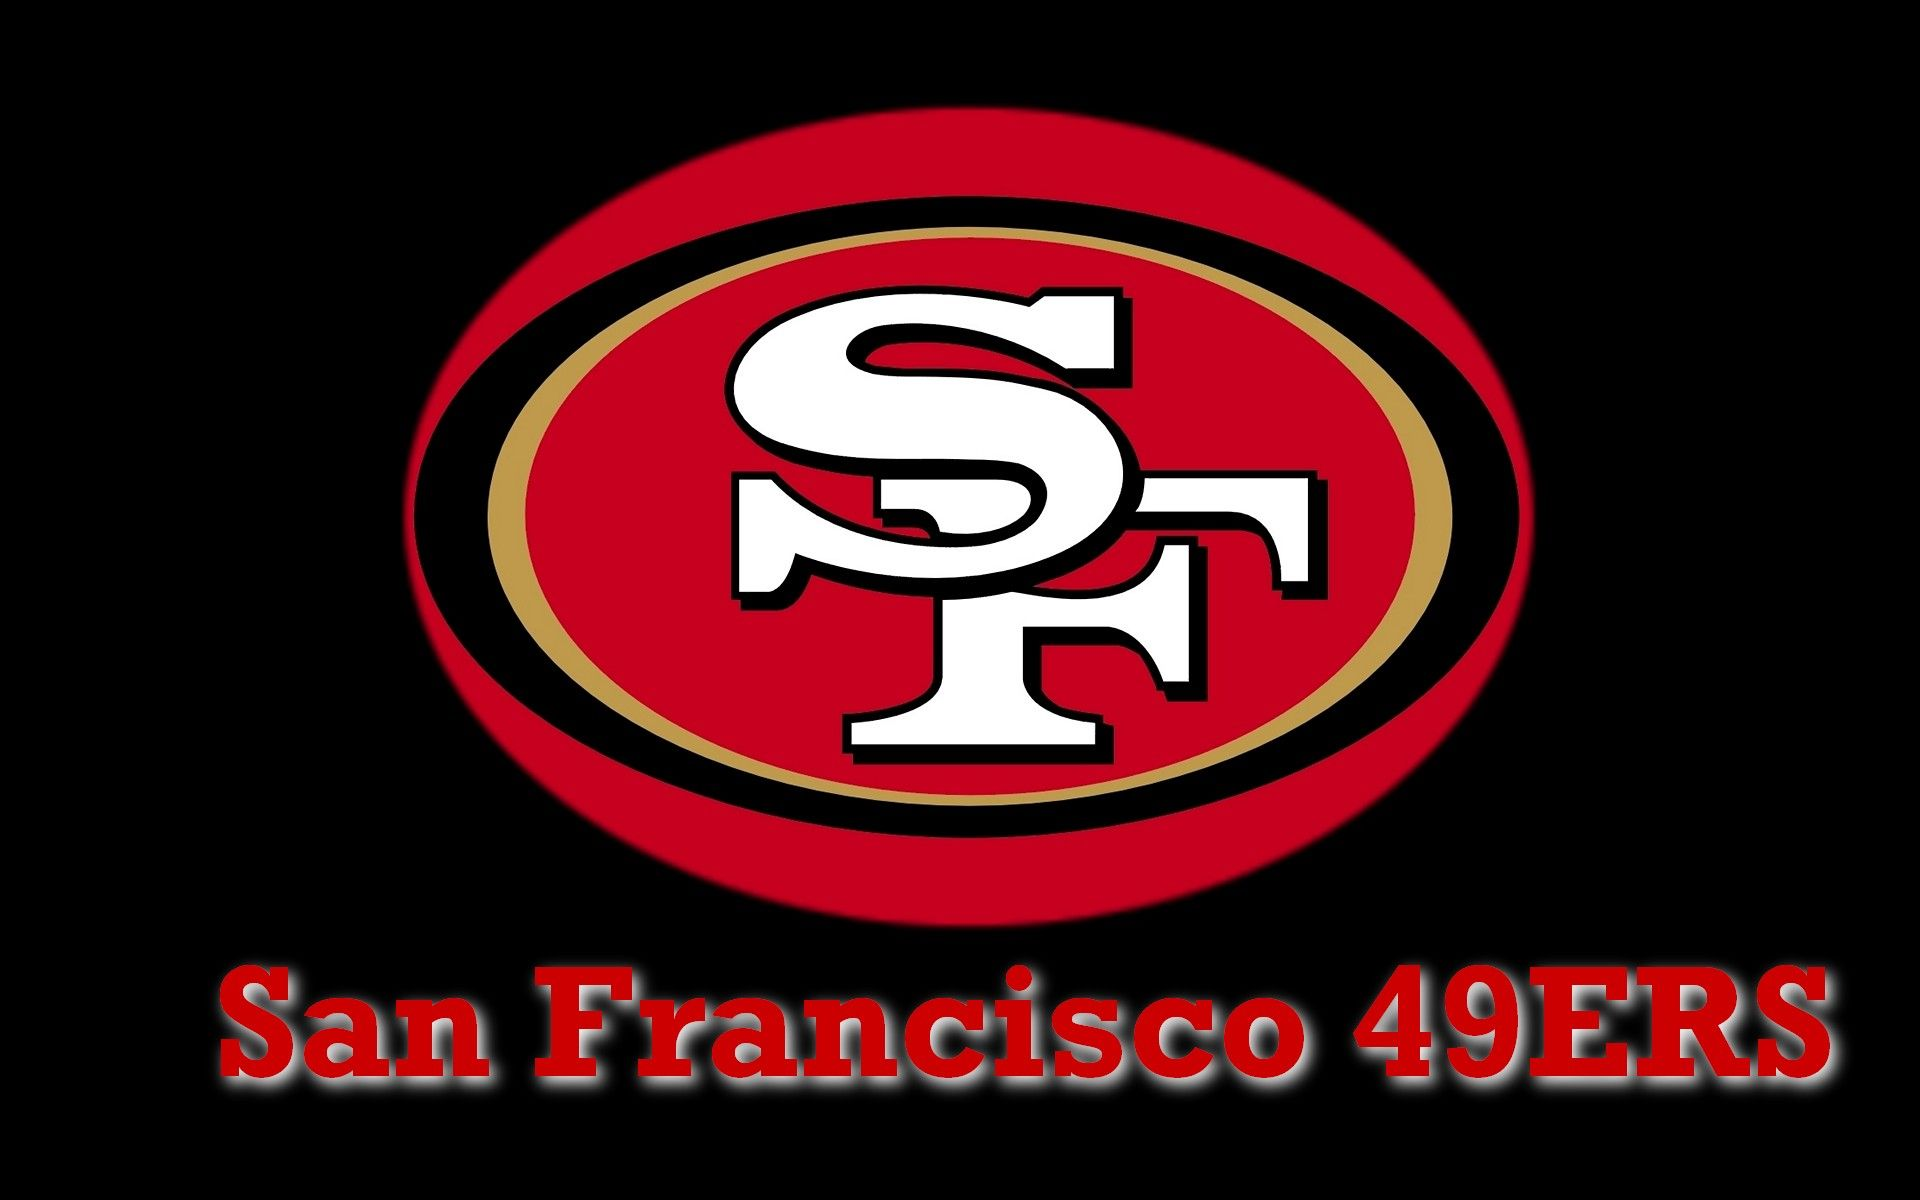 San Francisco 49ers Wallpapers 546 Wallpaper All Best Image 1920x1200